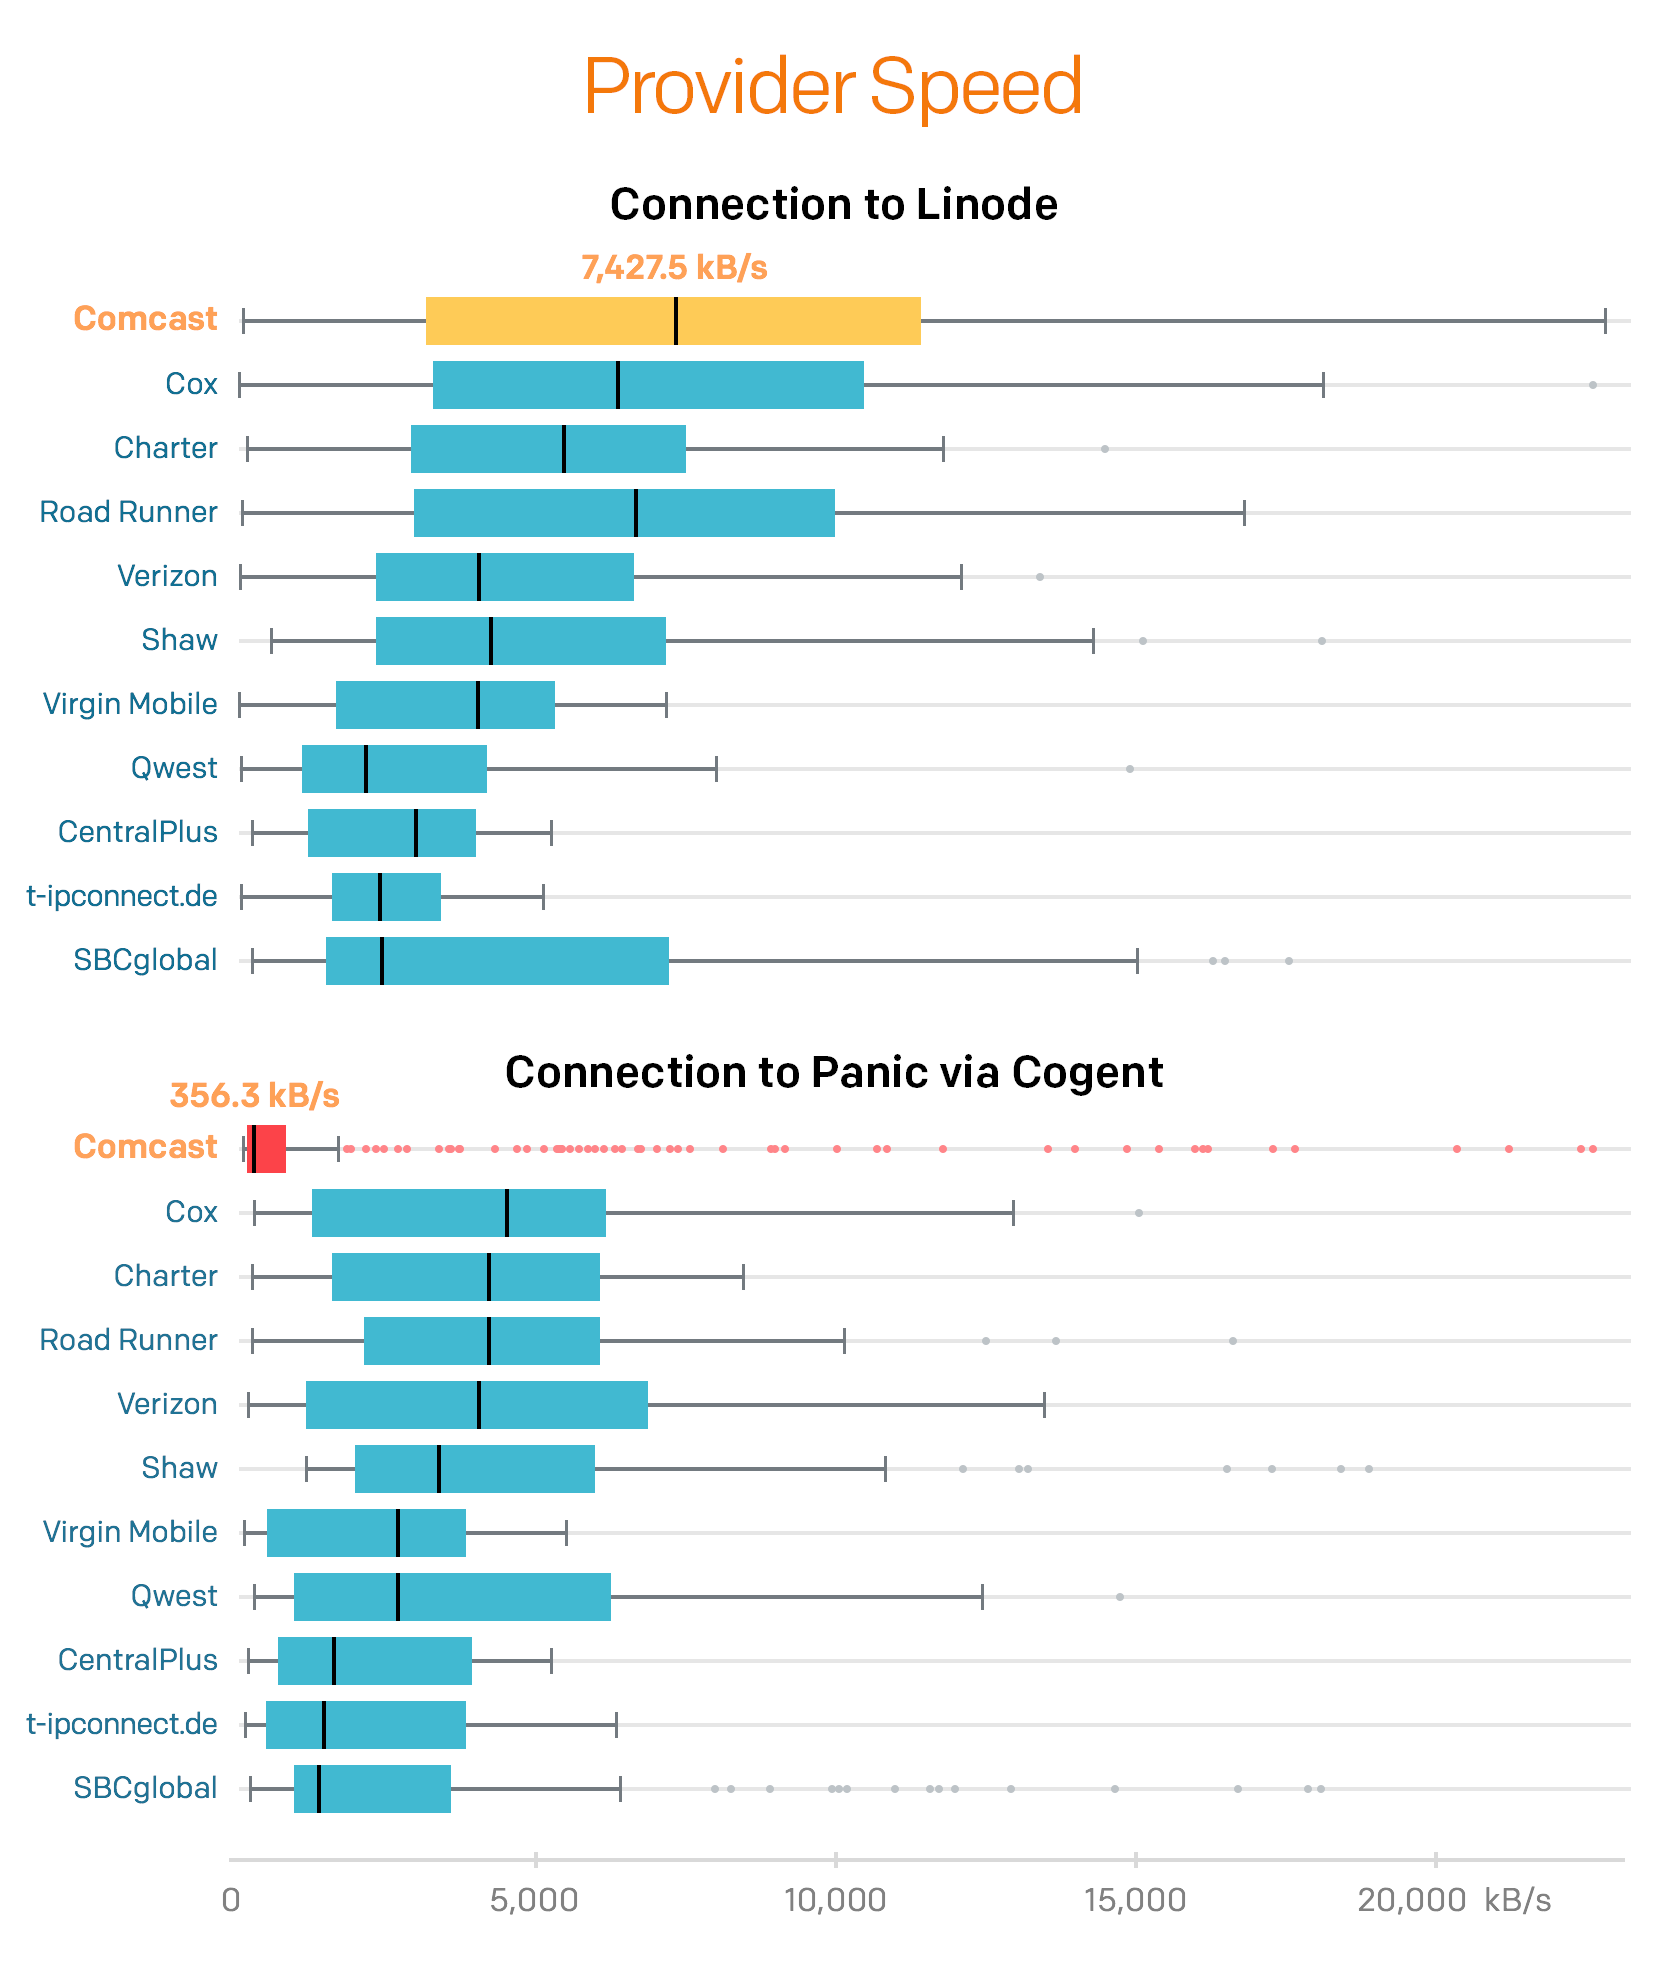 Image: This graph shows the connection speeds on Comcast via Cogent